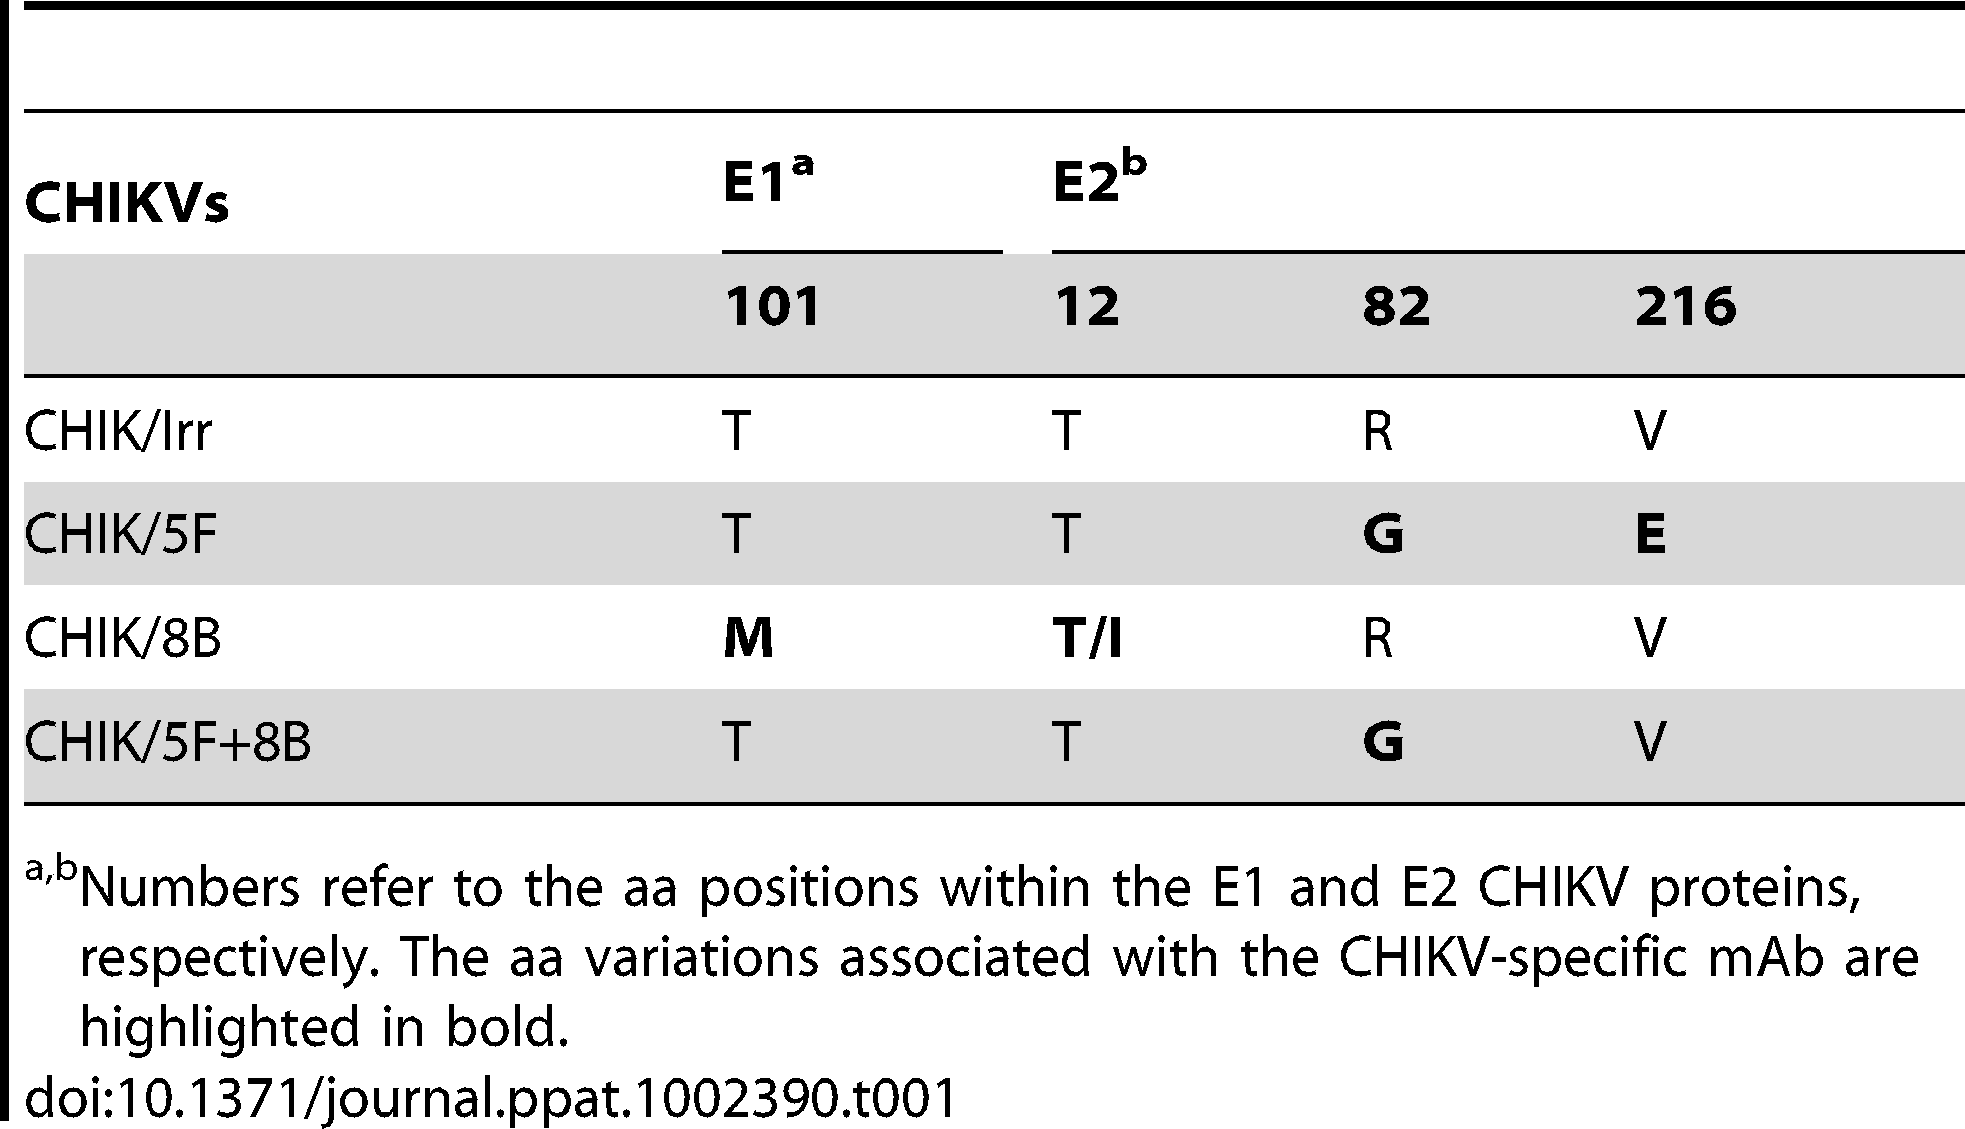 Amino acid variations in the E1 and E2 glycoproteins among CHIKV variants amplified over 8 rounds under mAb pressure.